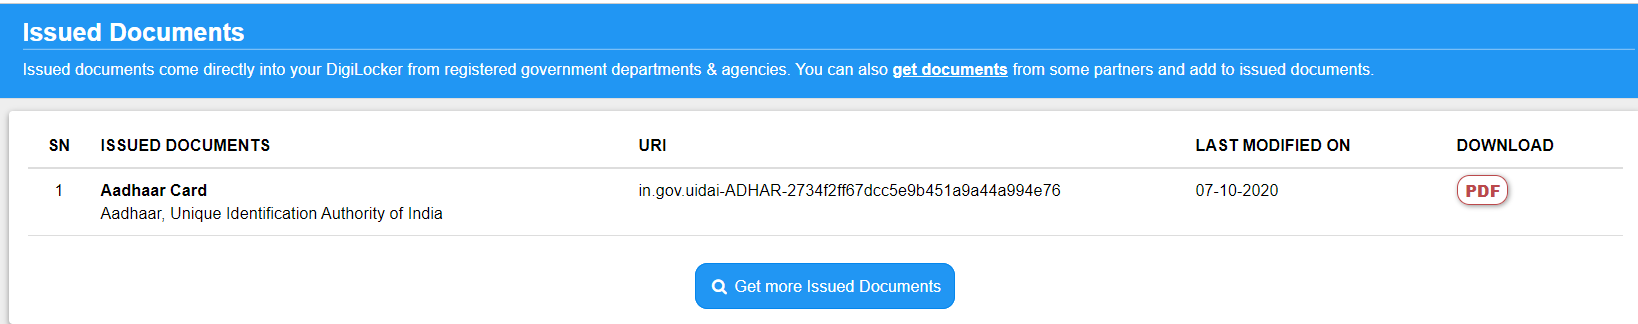 DigiLocker Fetch Issued Documents Step 4